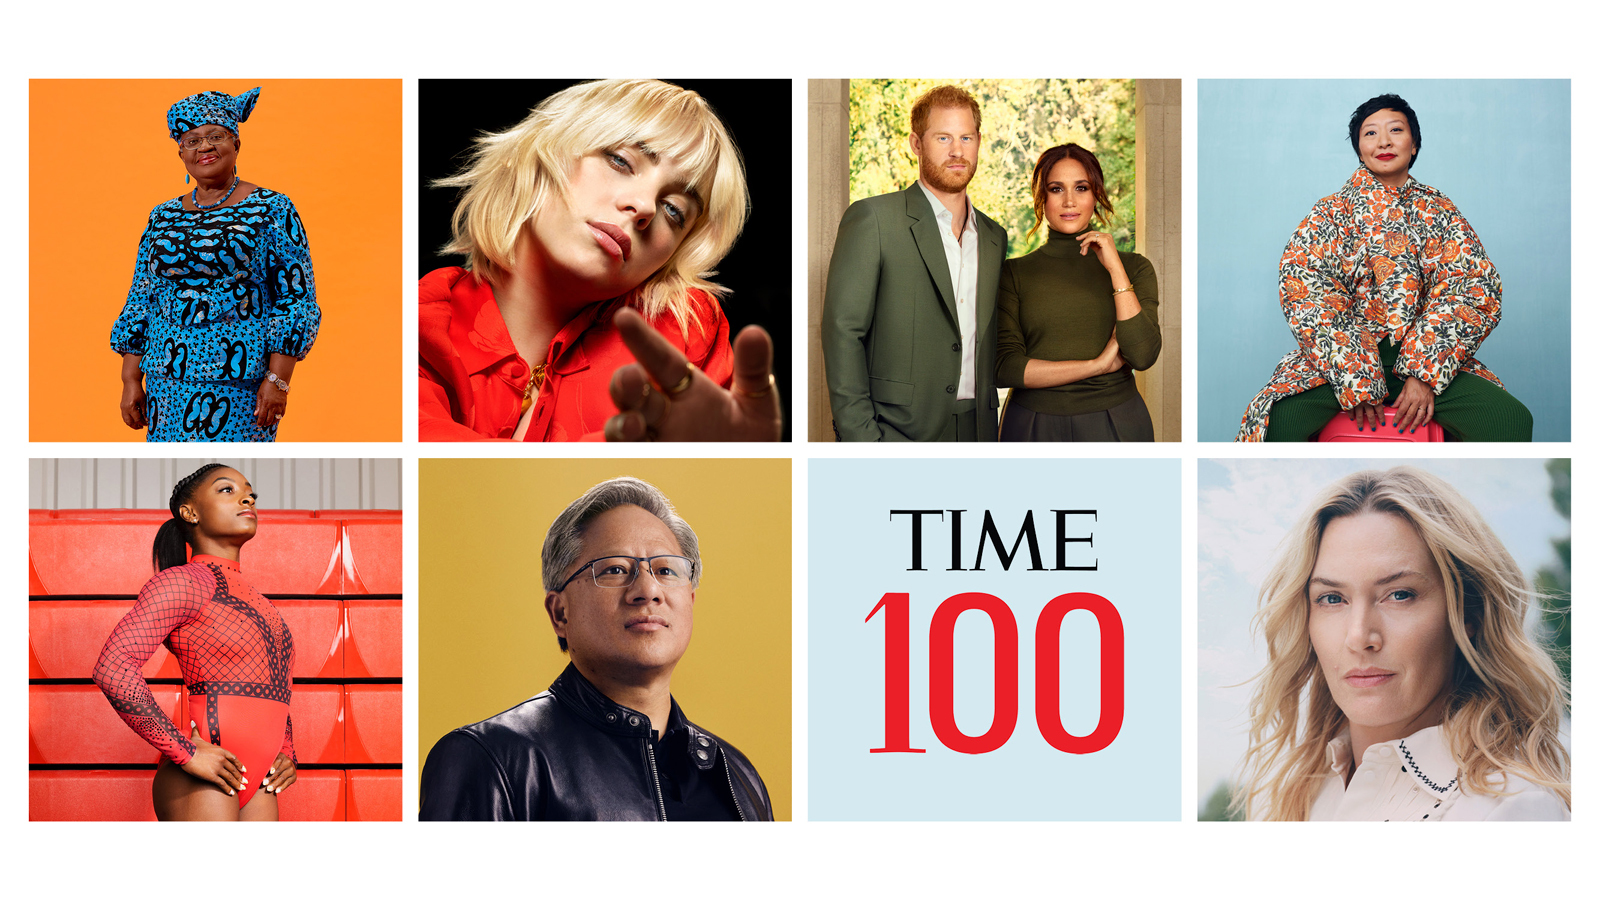 The 2021 TIME100 list of the world's most influential people featured pioneers like Billie Eilish, titans like Simone Biles and icons like Britney Spears. The TIME100 broadcast special highlighted these figures—and more—Monday, Sept. 21, 2021 on ABC.